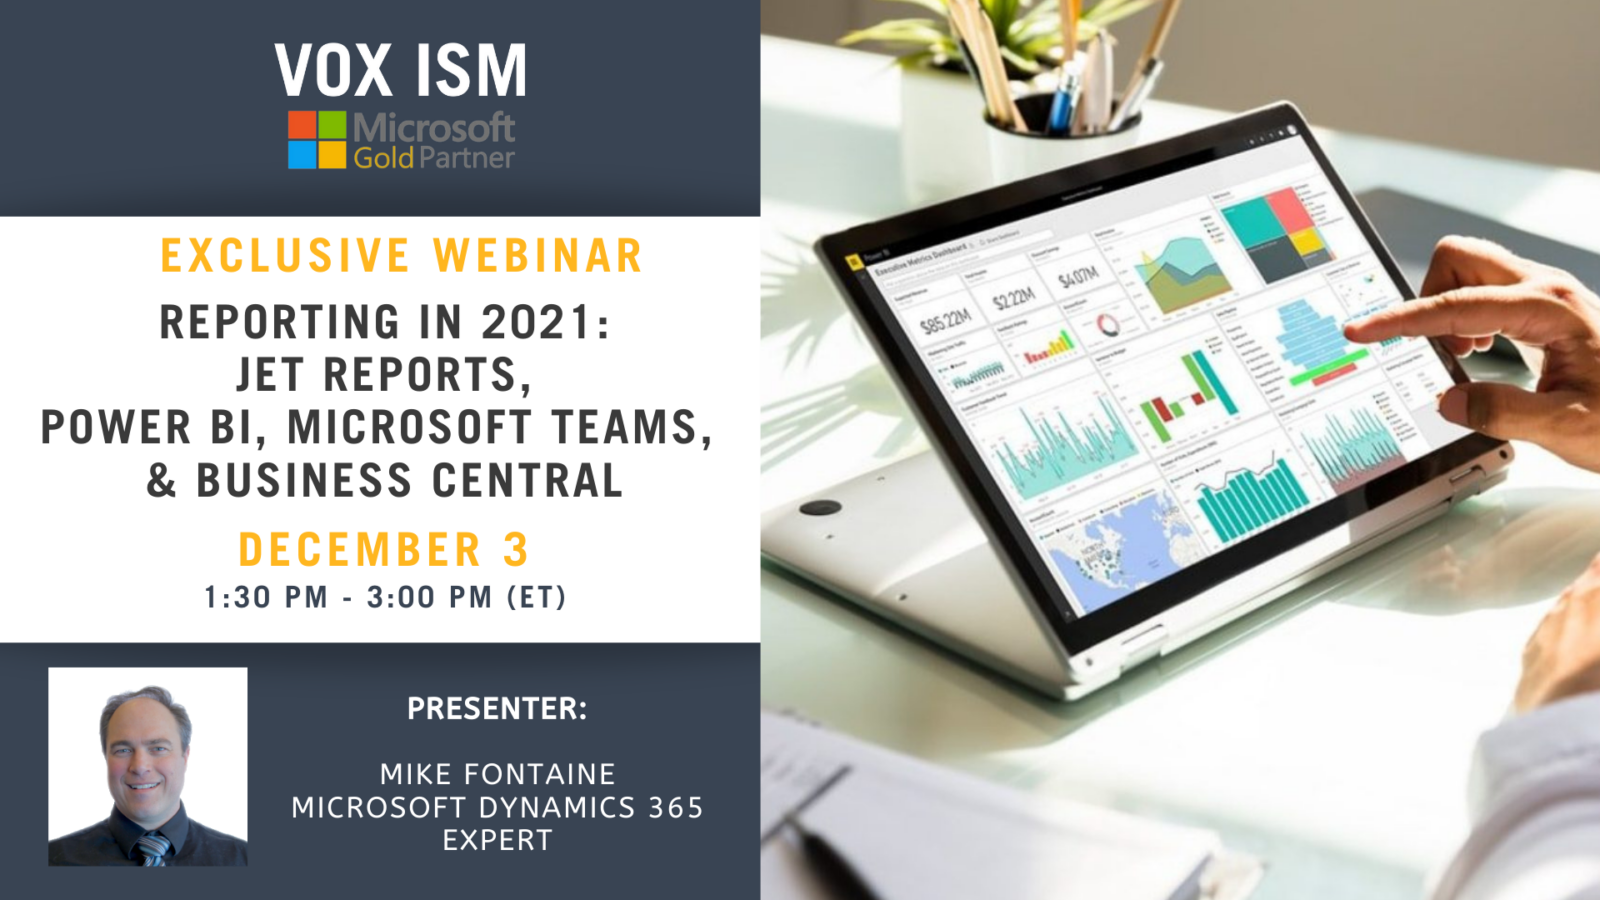 Reporting in 2021 (Jet Reports, Power BI, Microsoft Teams, and Business Central) - December 3 - Webinar